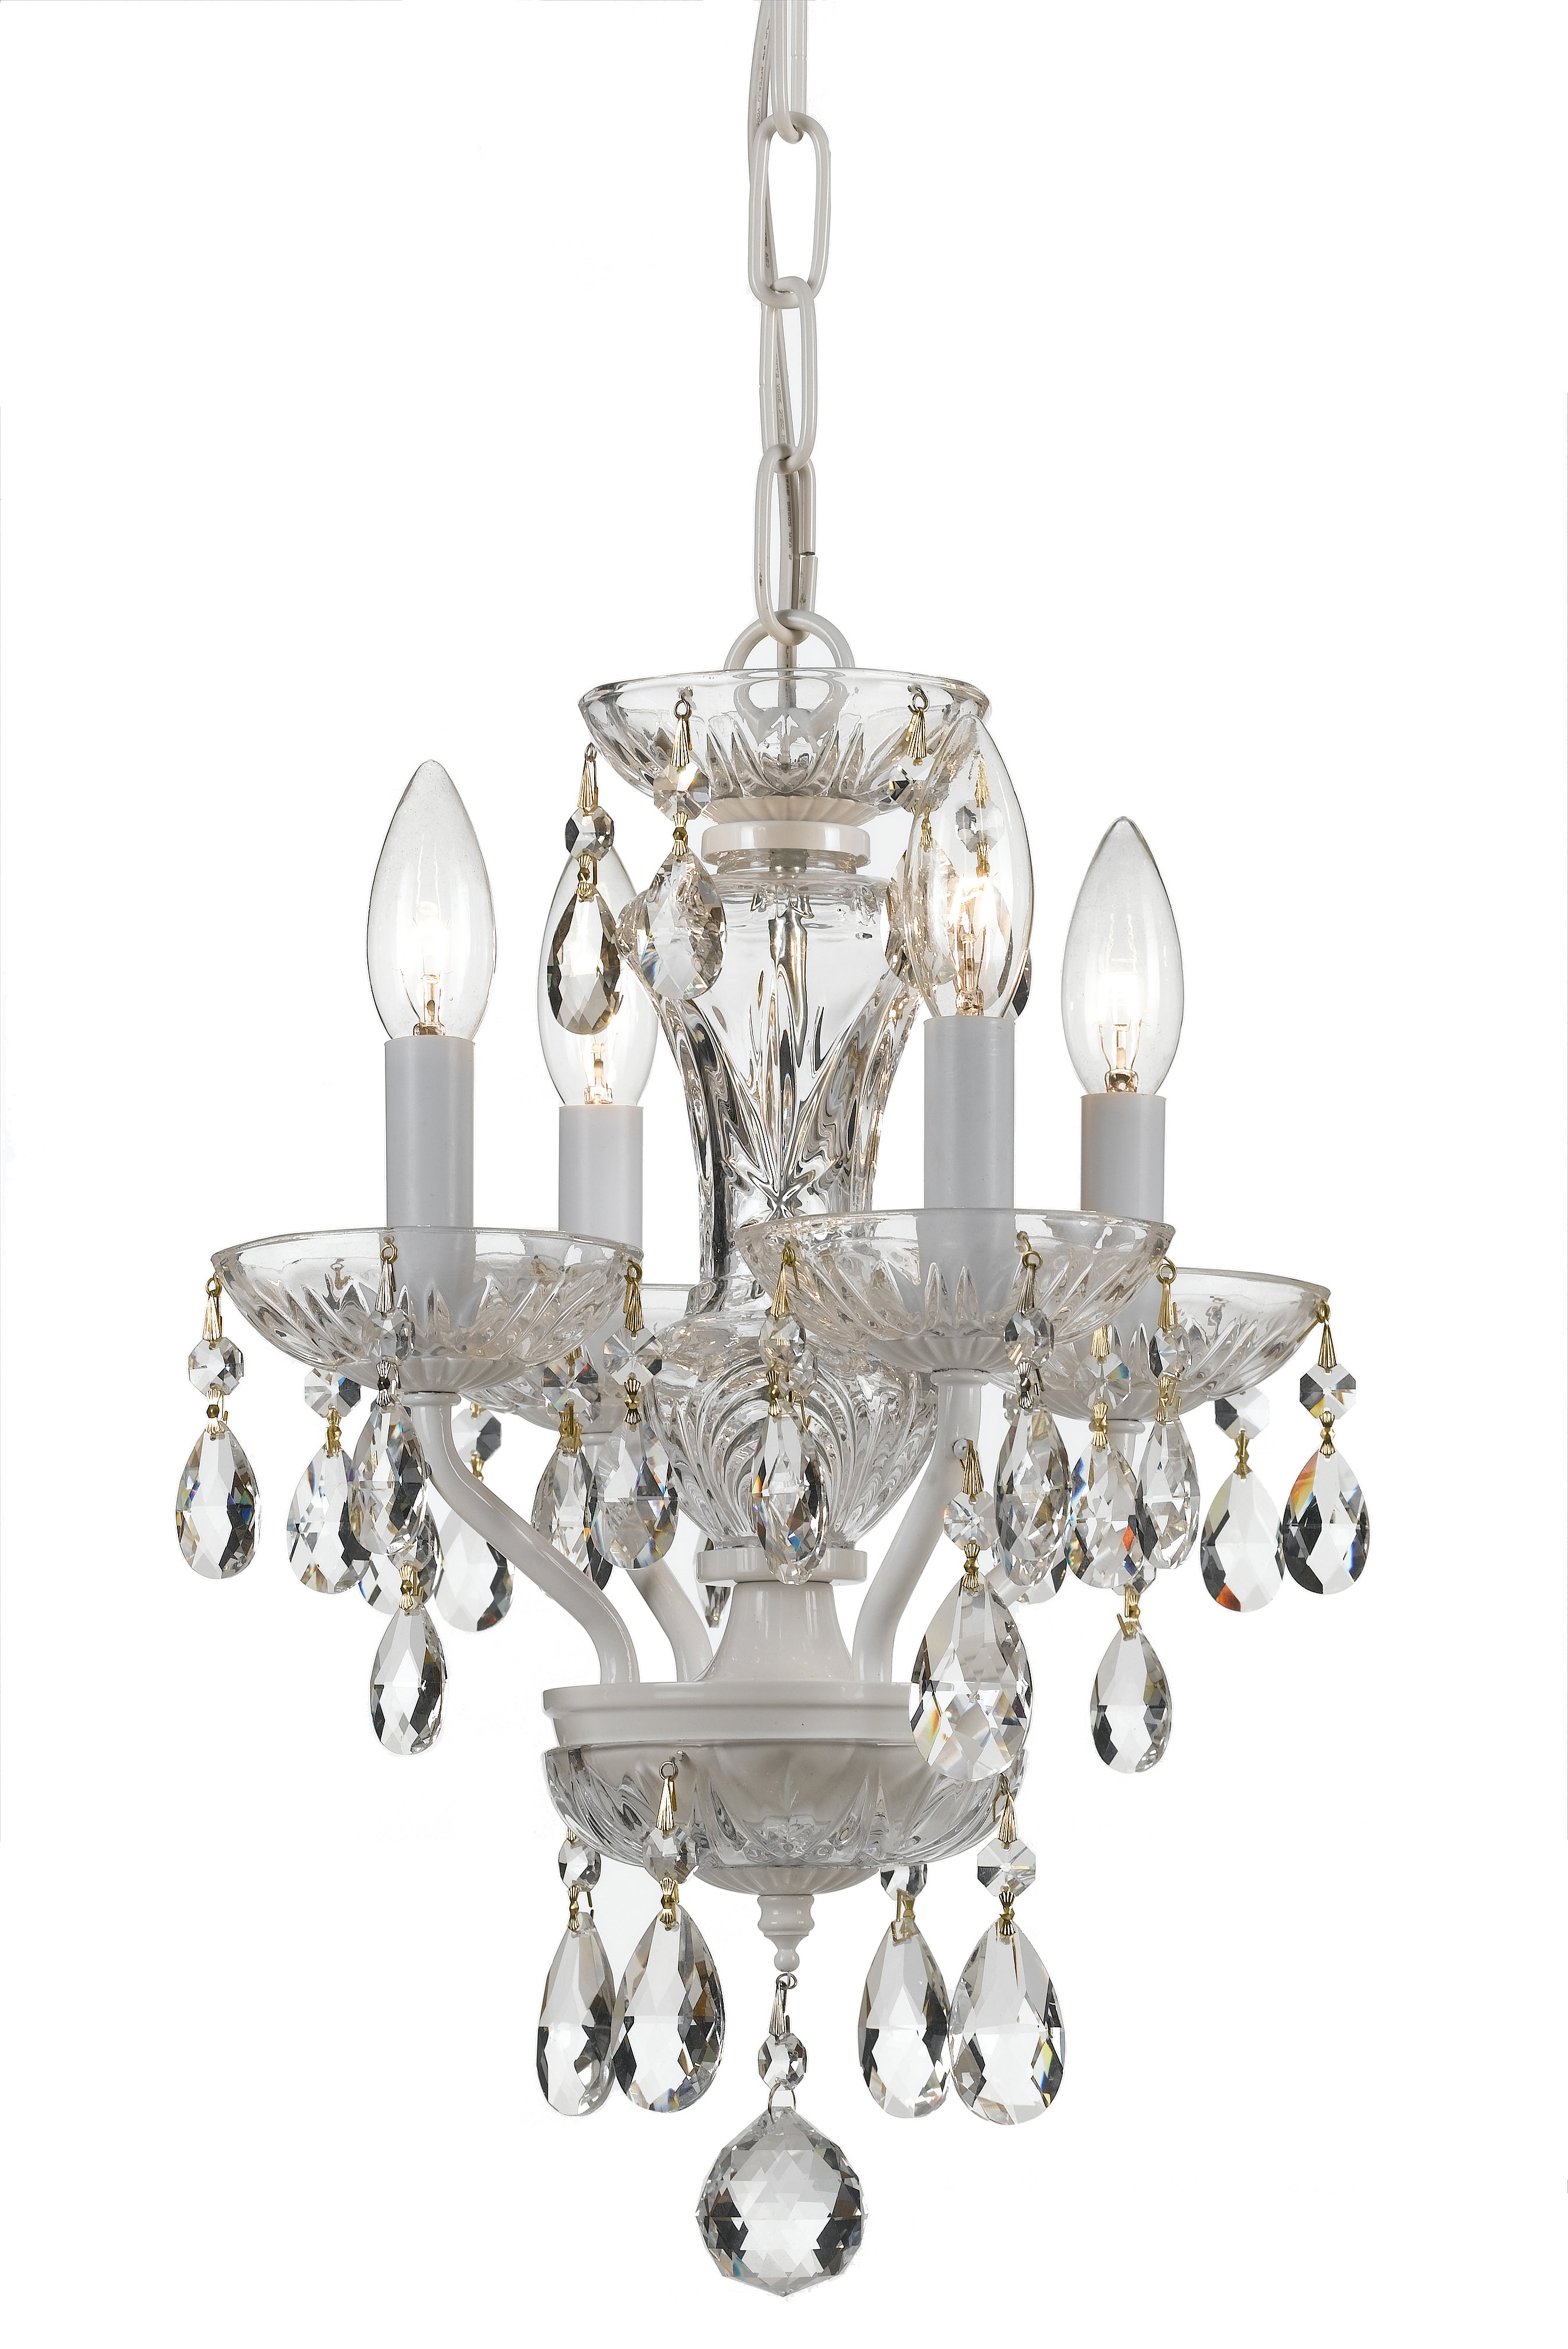 Preferred Malpaso 4 Light Candle Style Chandelier Pertaining To Aldora 4 Light Candle Style Chandeliers (View 12 of 25)